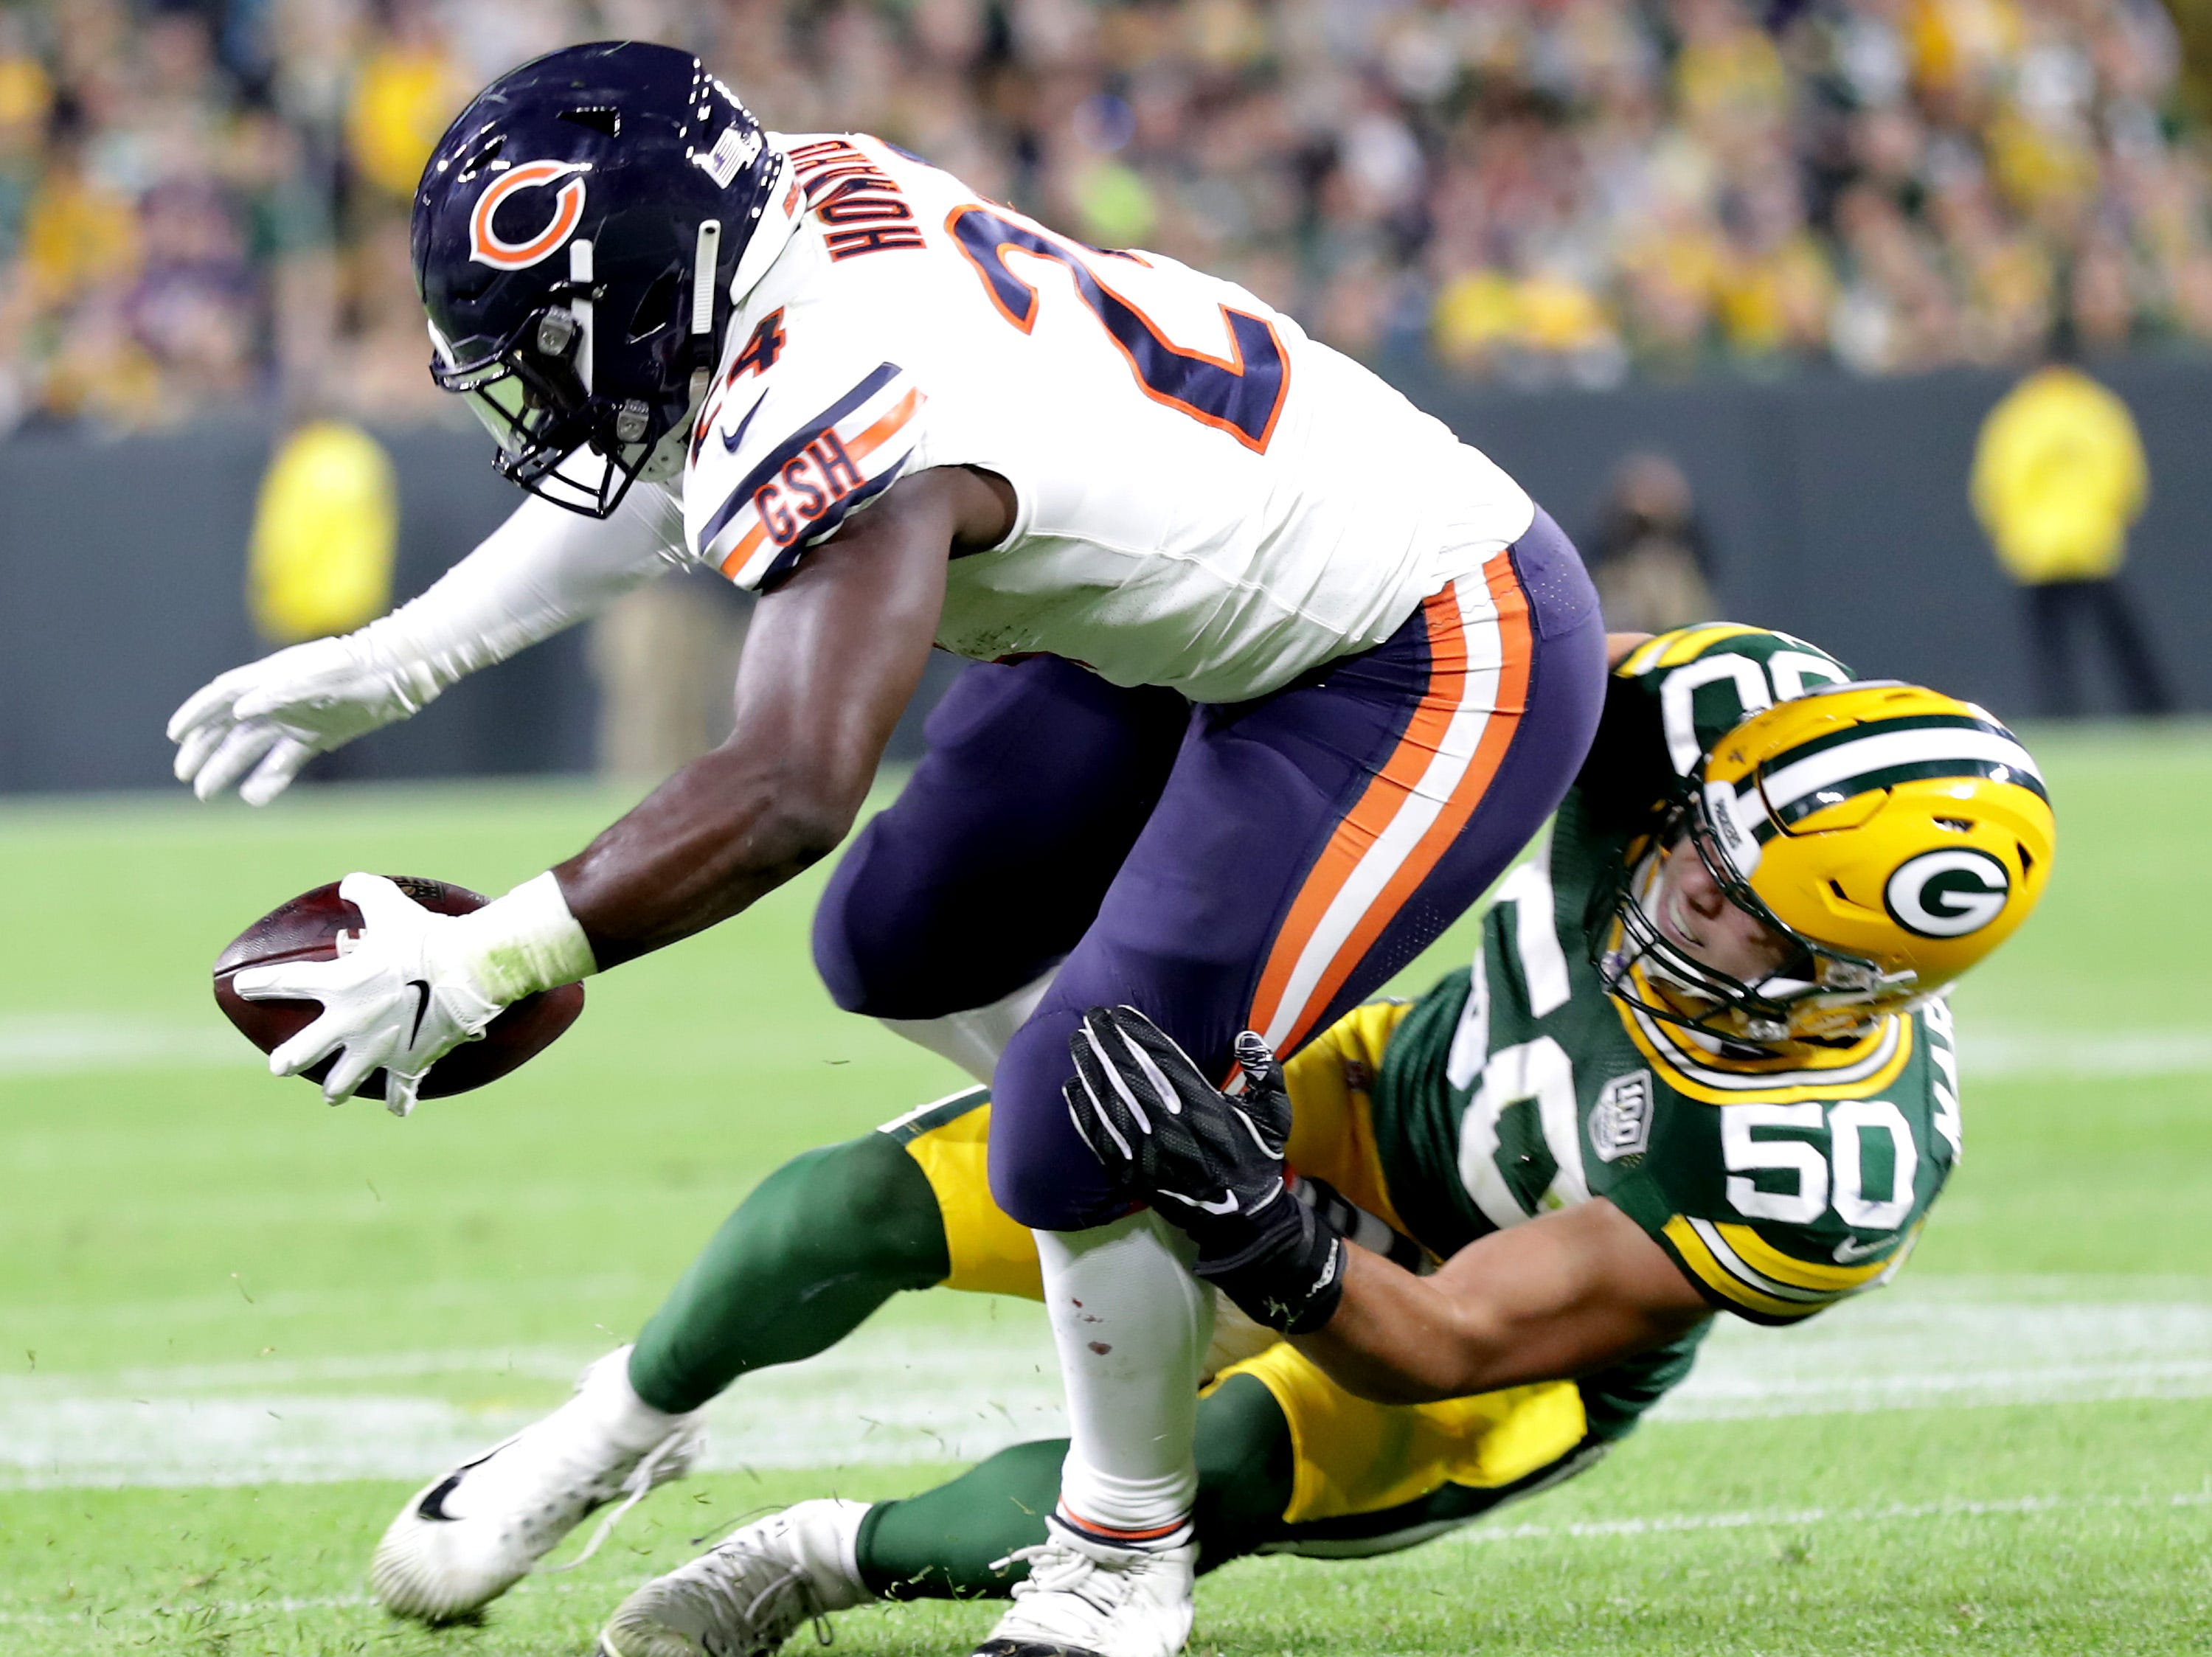 Green Bay Packers' Blake Martinez tackles Chicago Bears' Jordan Howard in the season opener on Sunday, September 9, 2018, at Lambeau Field in Green Bay, Wis. The Packers defeated the Bears 24 to 23.